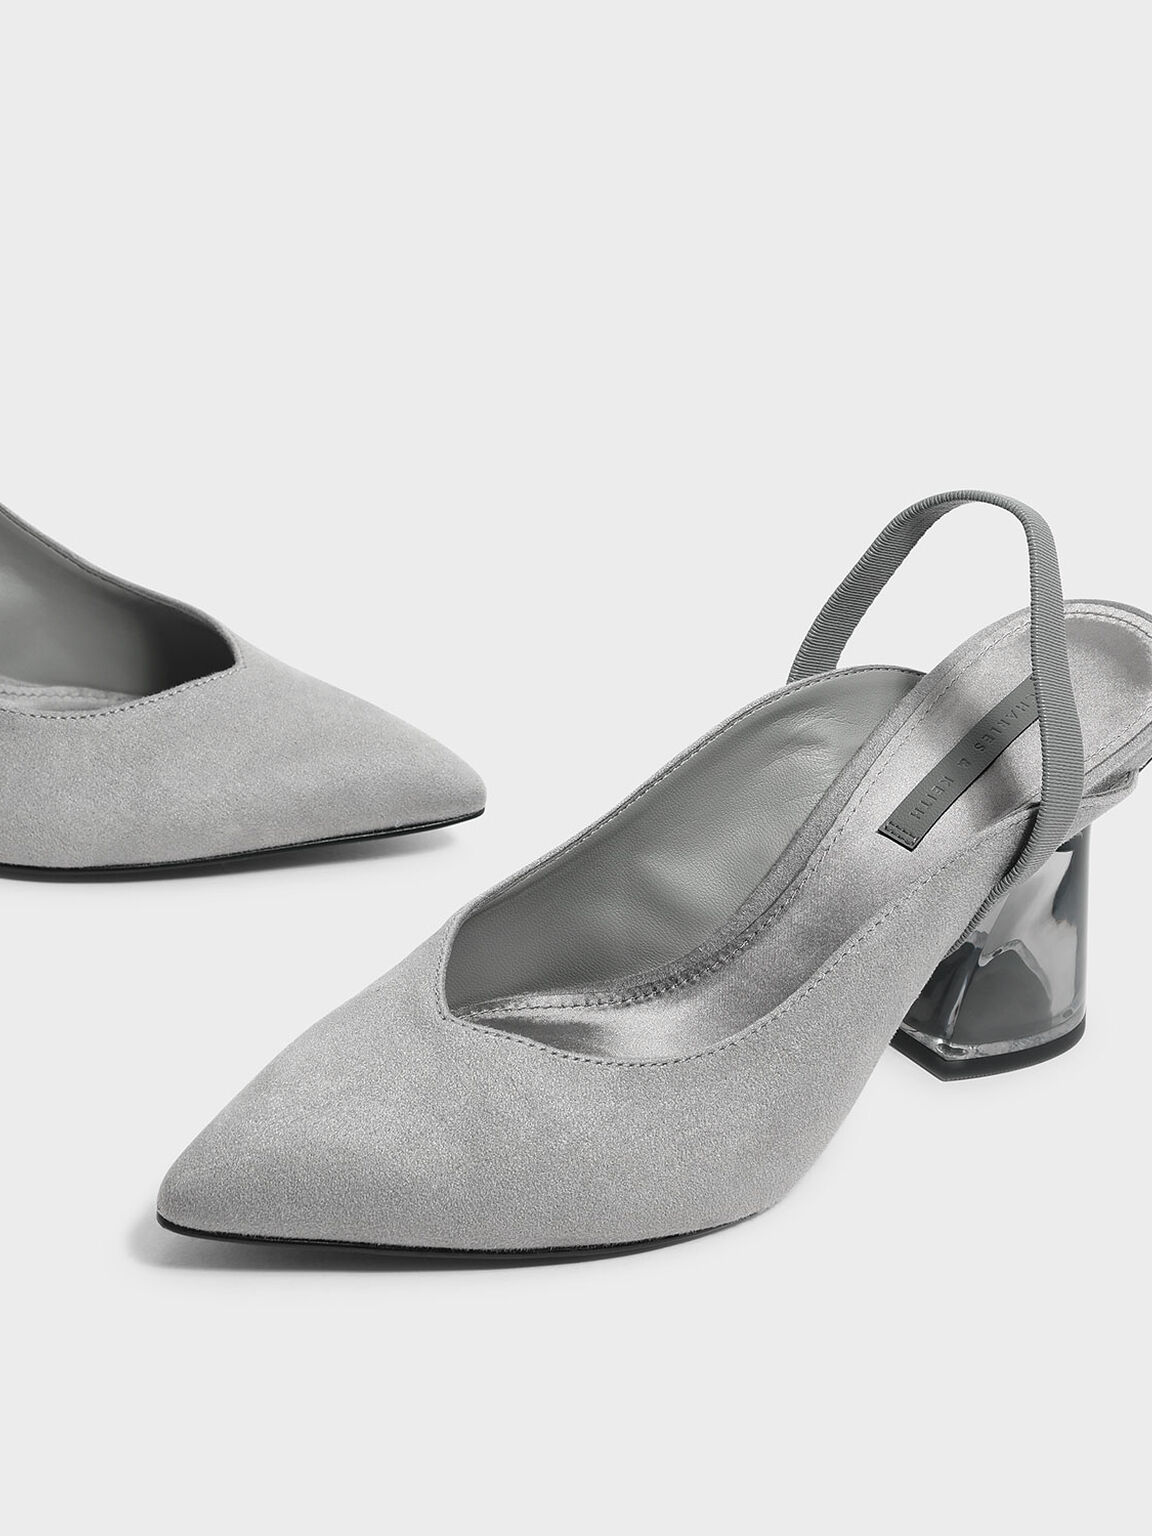 Lucite Sculptural Heel Slingbacks, Grey, hi-res